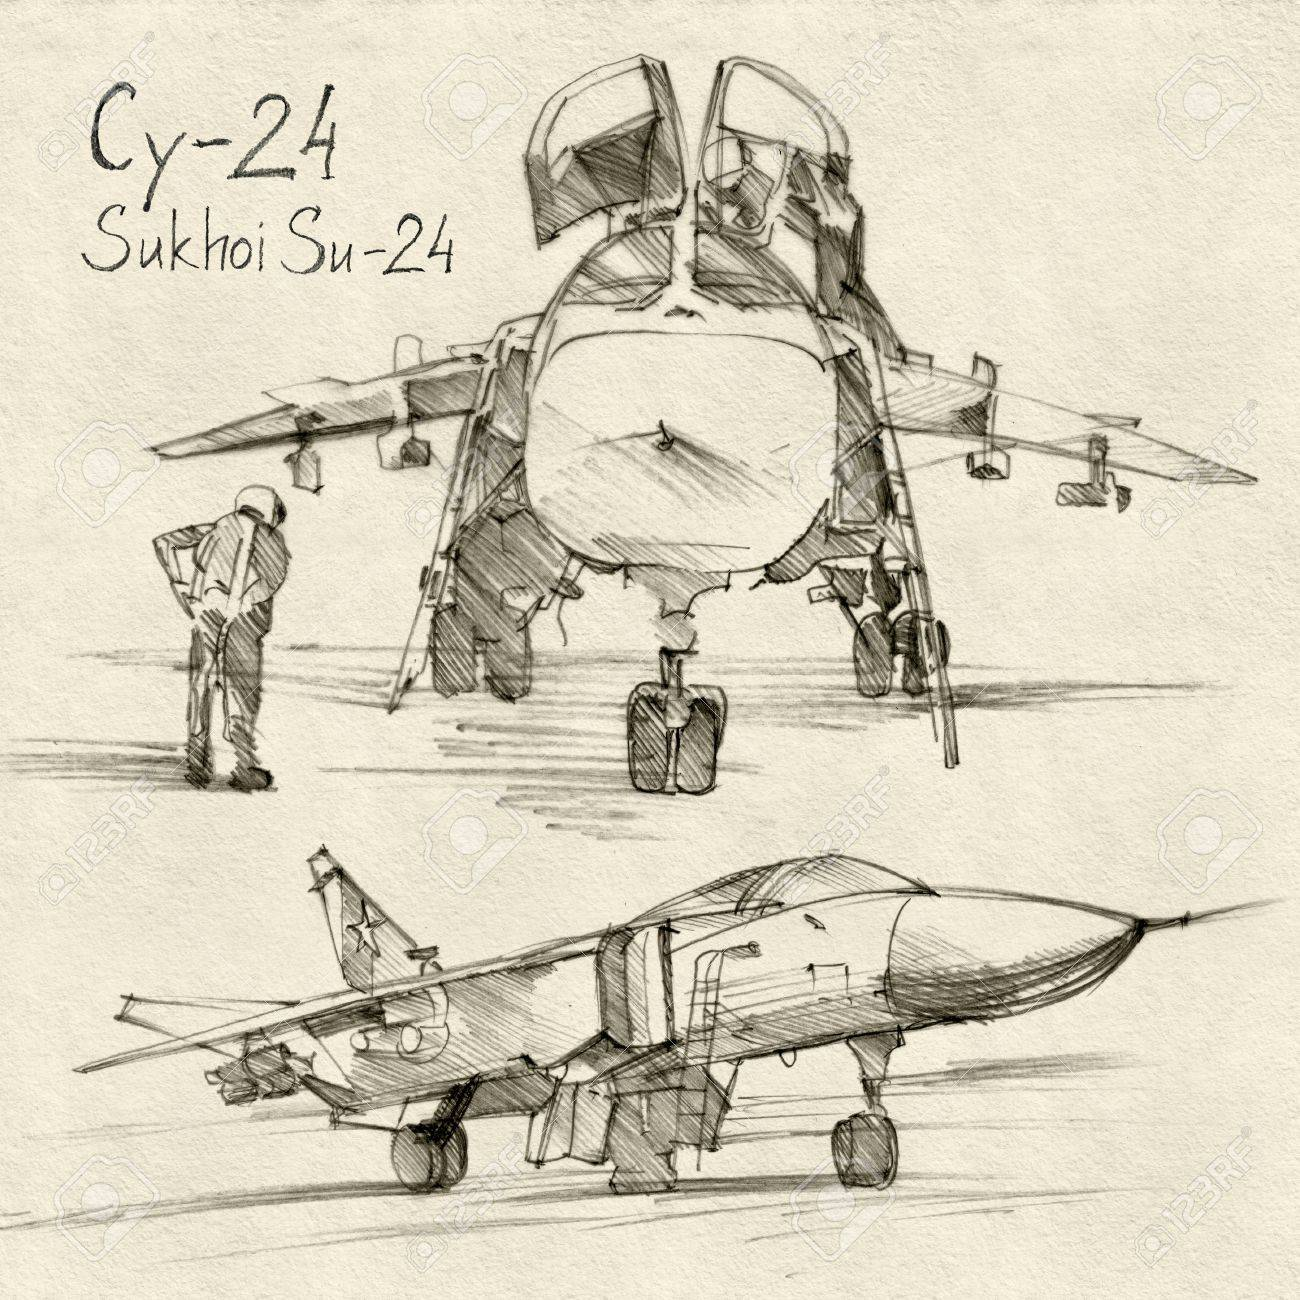 The series of soviet military enginery  The Sukhoi Su-24 a supersonic,